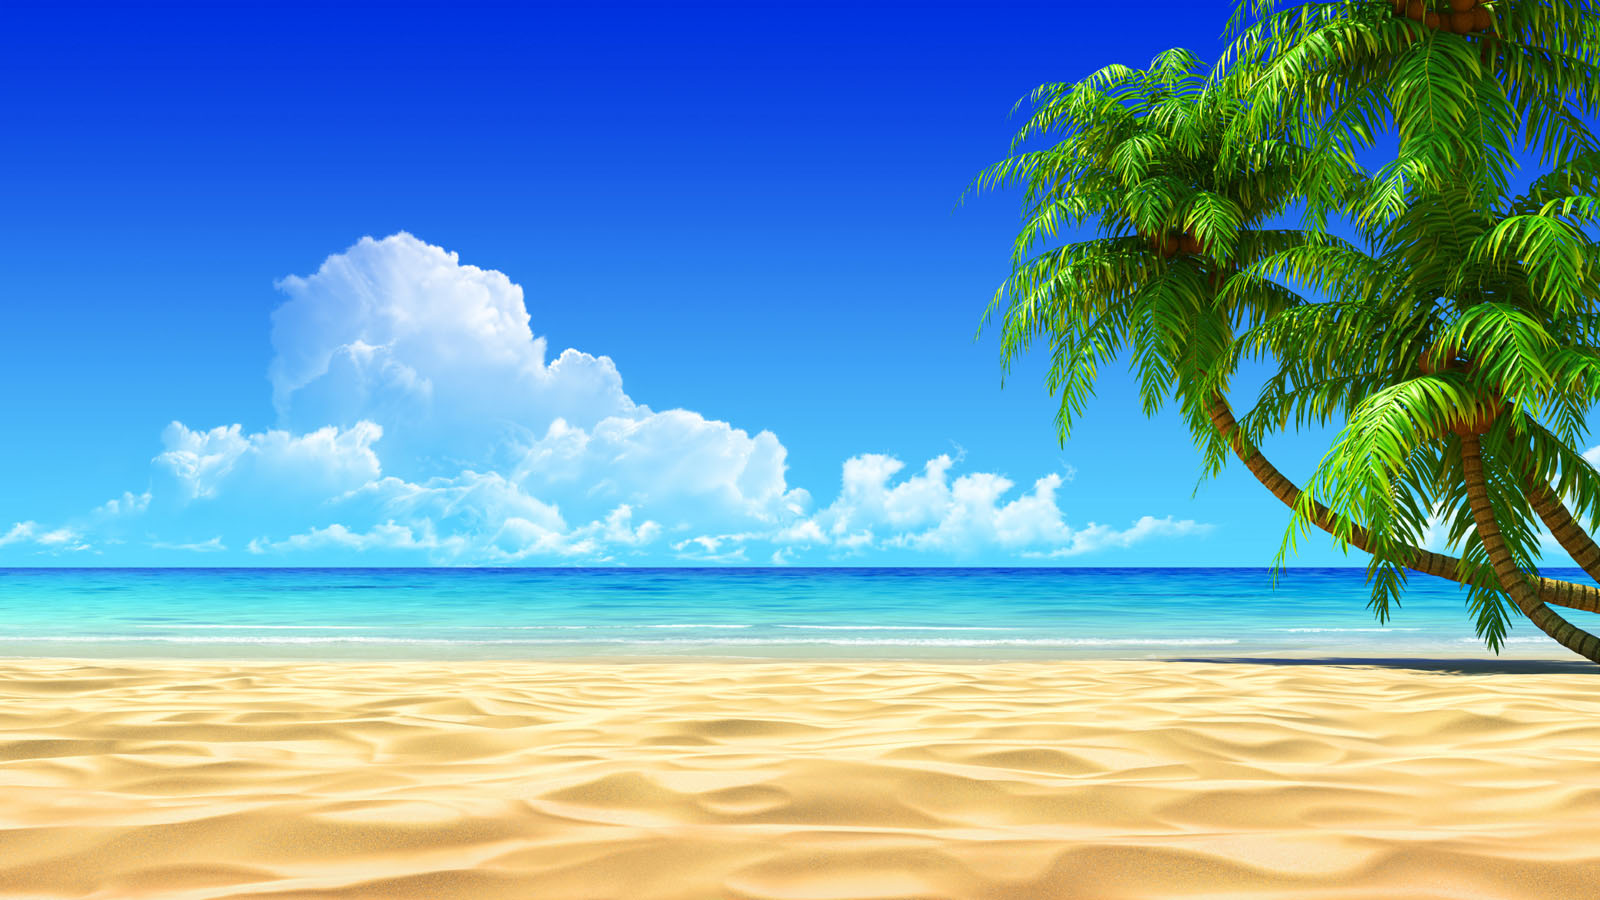 beach wallpaper 1600x900